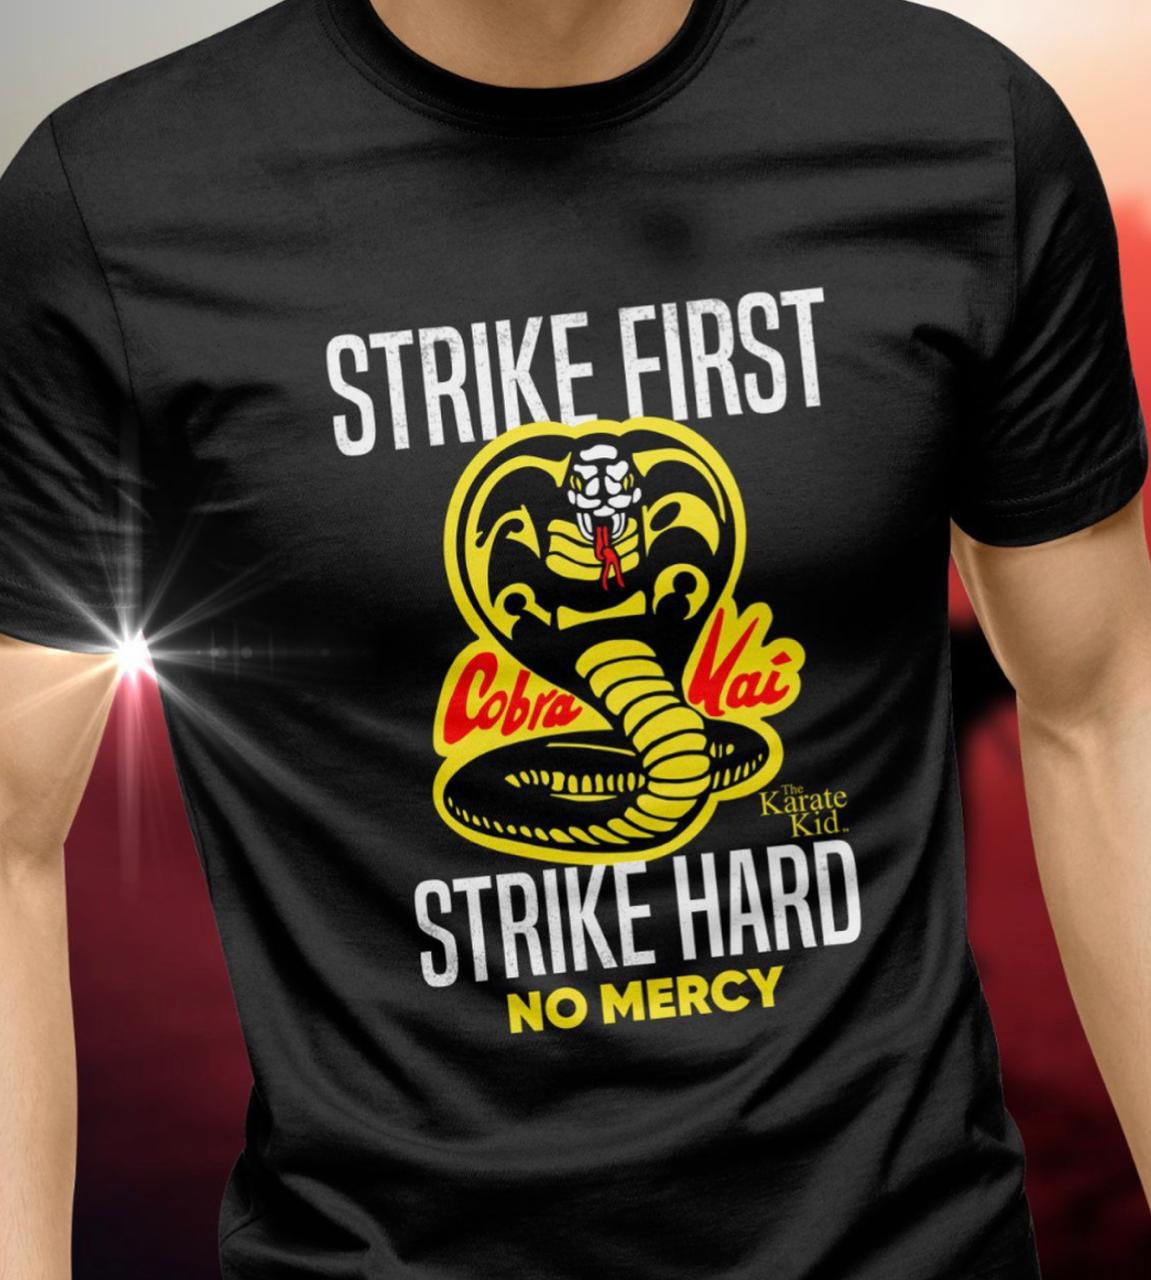 Camiseta: '' Strike First, Strike Hard No Mercy